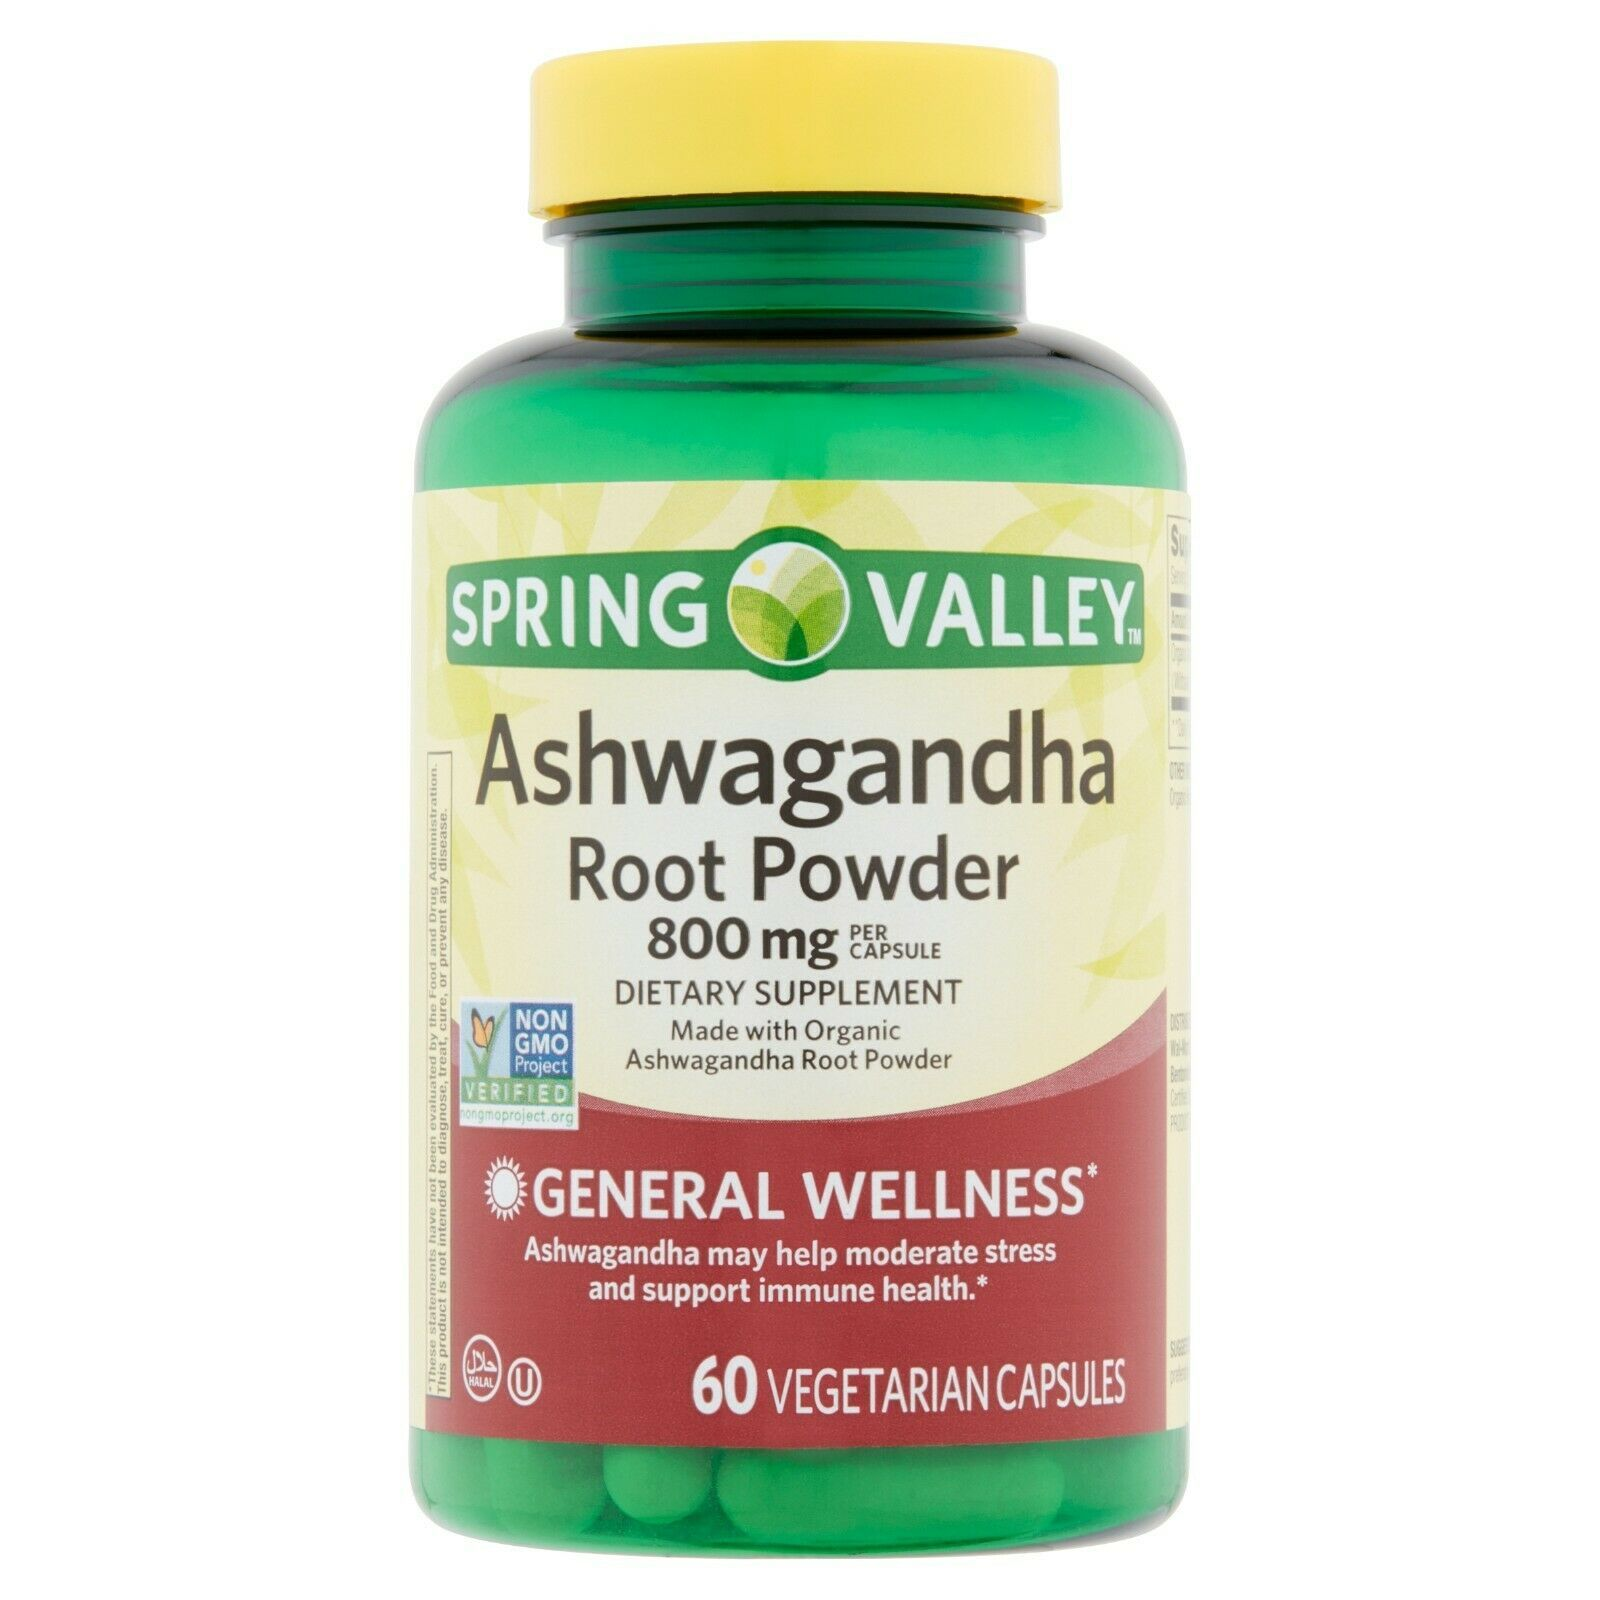 Spring Valley Ashwagandha Root Powder Vegetarian Capsules, 800 mg, 60 count. - $16.82